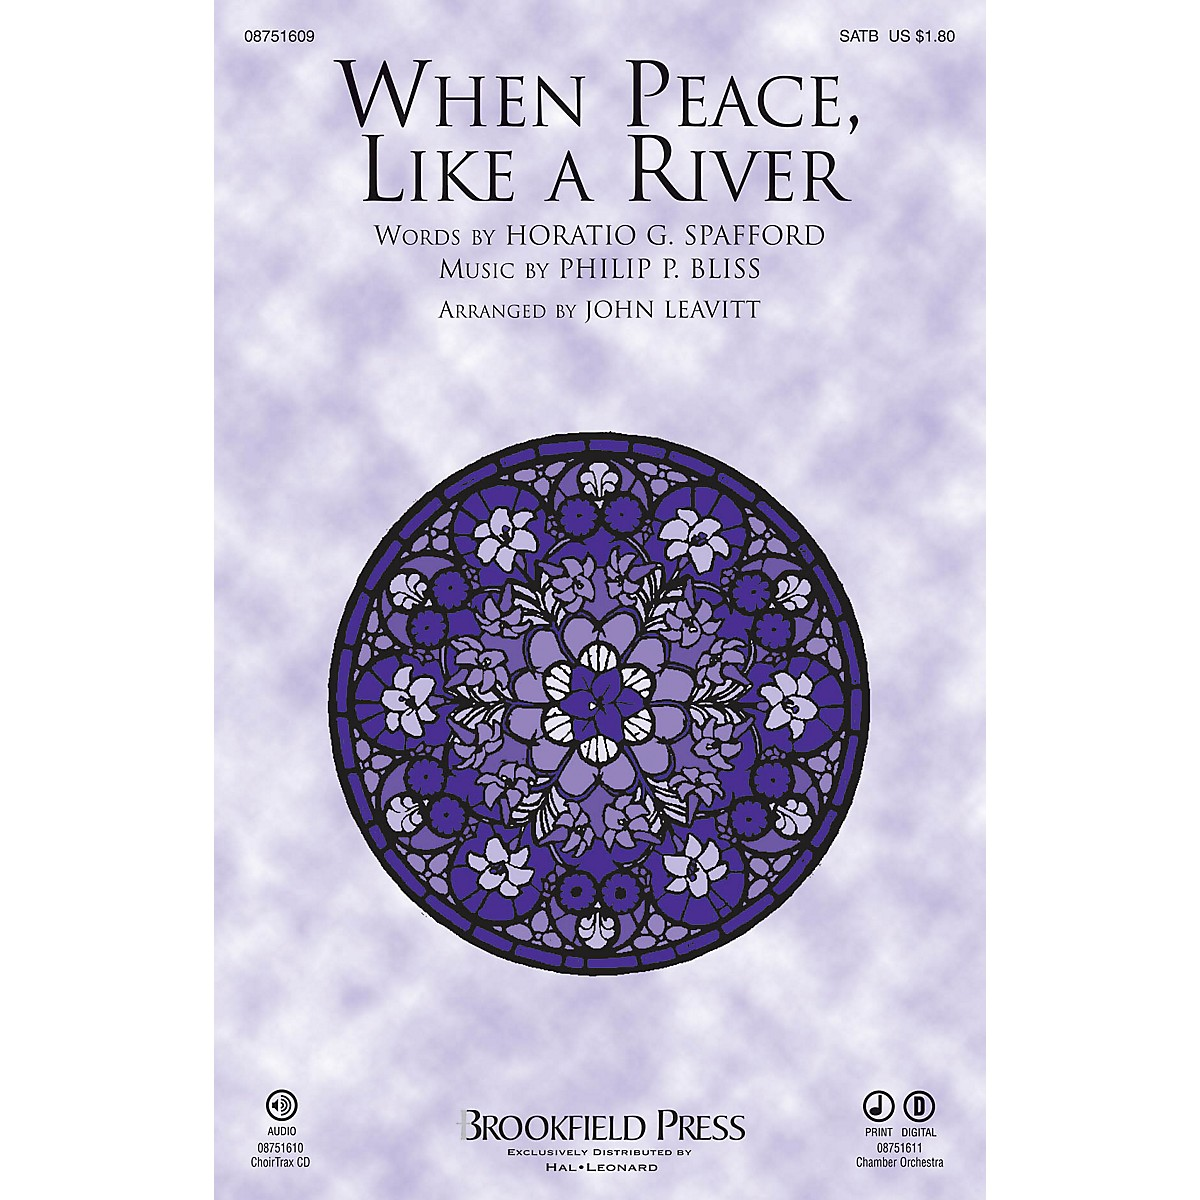 Brookfield When Peace Like a River CHAMBER ORCHESTRA ACCOMP Arranged by John Leavitt